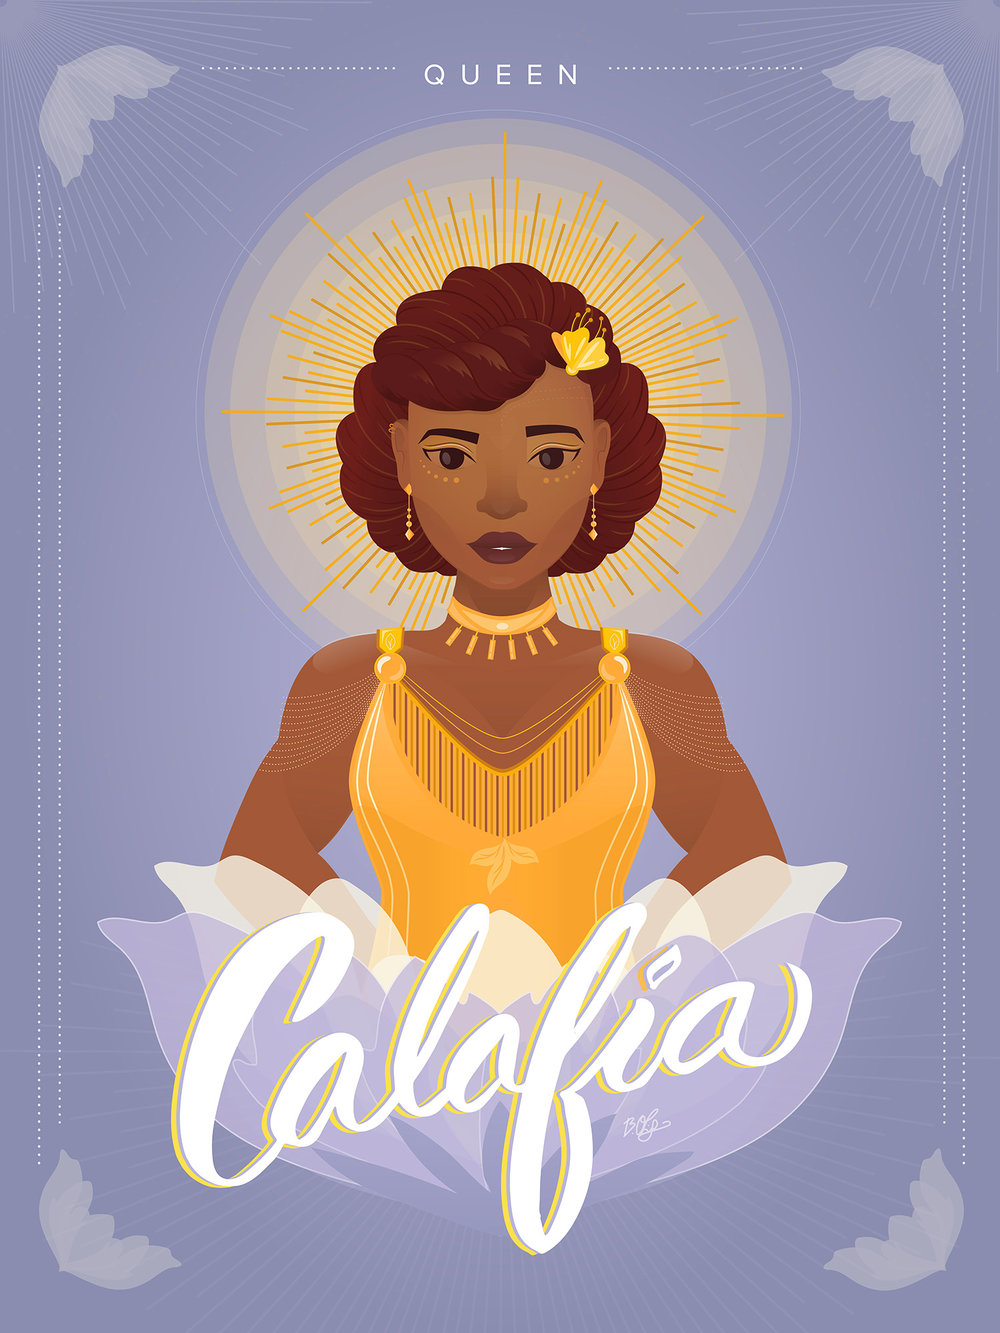 Contemporary Califia: Shown at the Queen Calafia Exhibit